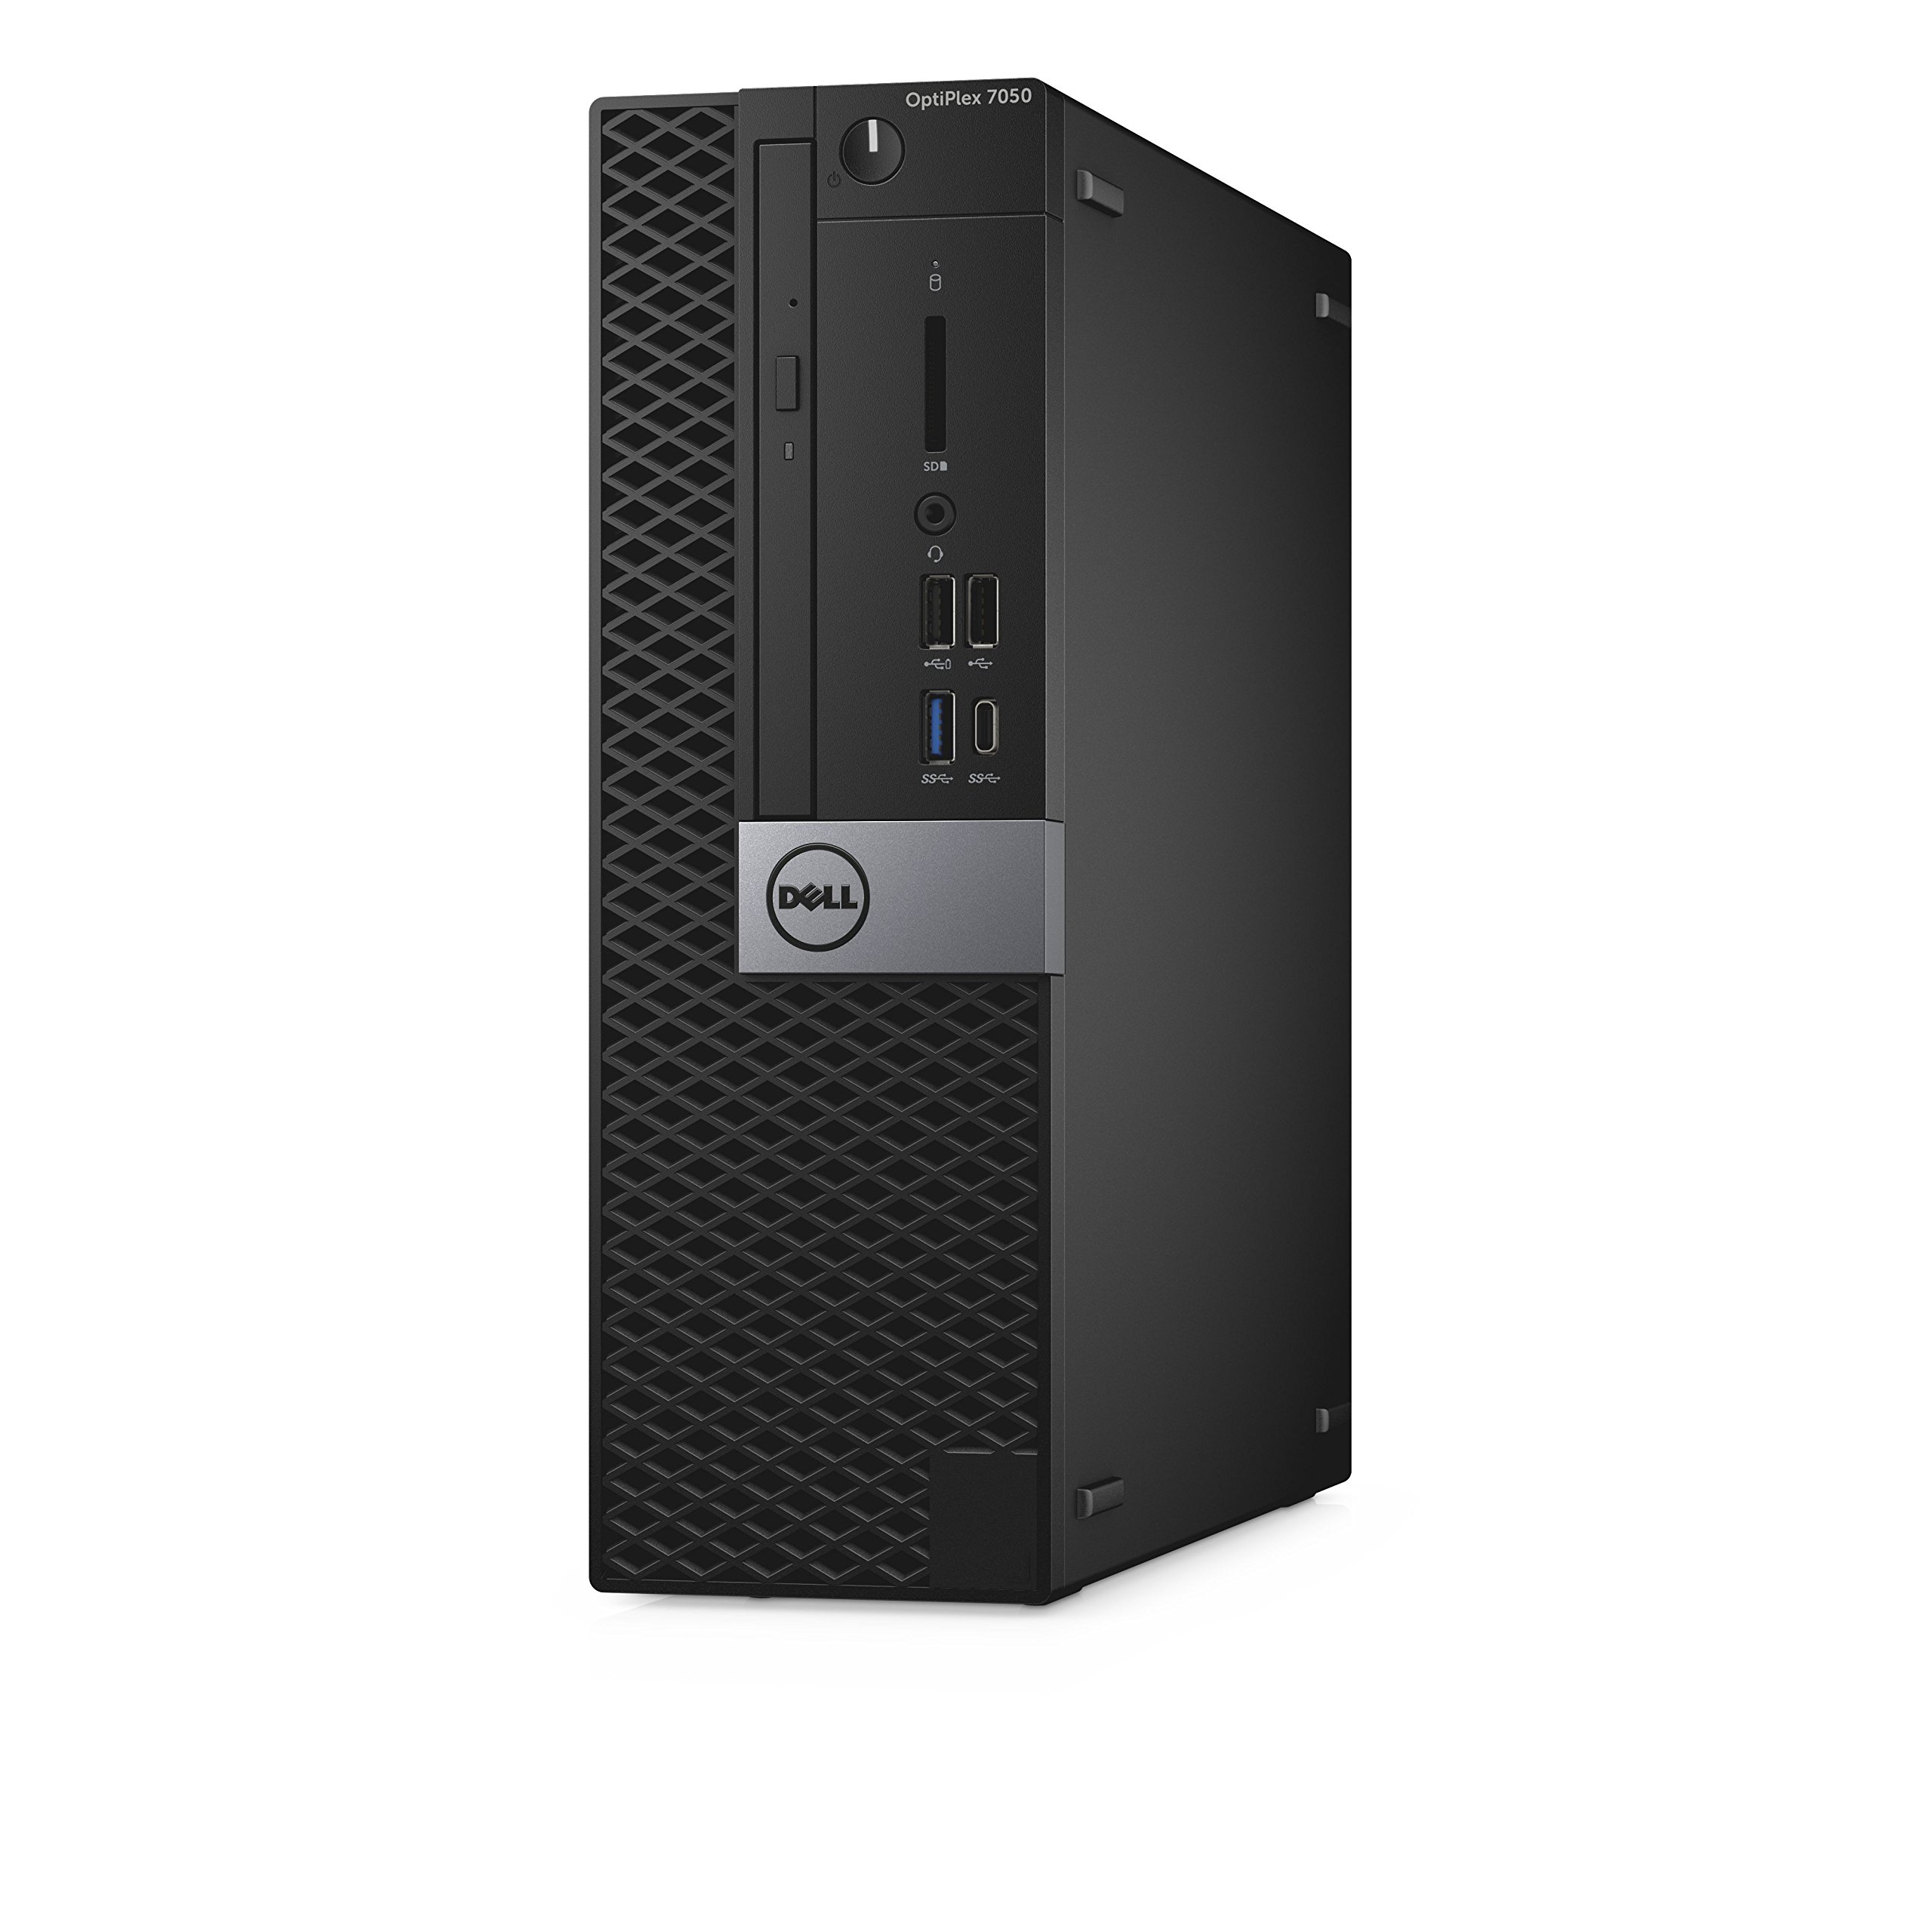 Dell OptiPlex 7050 Small Form Factor Desktop Computer, Intel Core i5-7500, 8GB DDR4, 500GB Hard Drive, Windows 10 Pro (70NRJ)